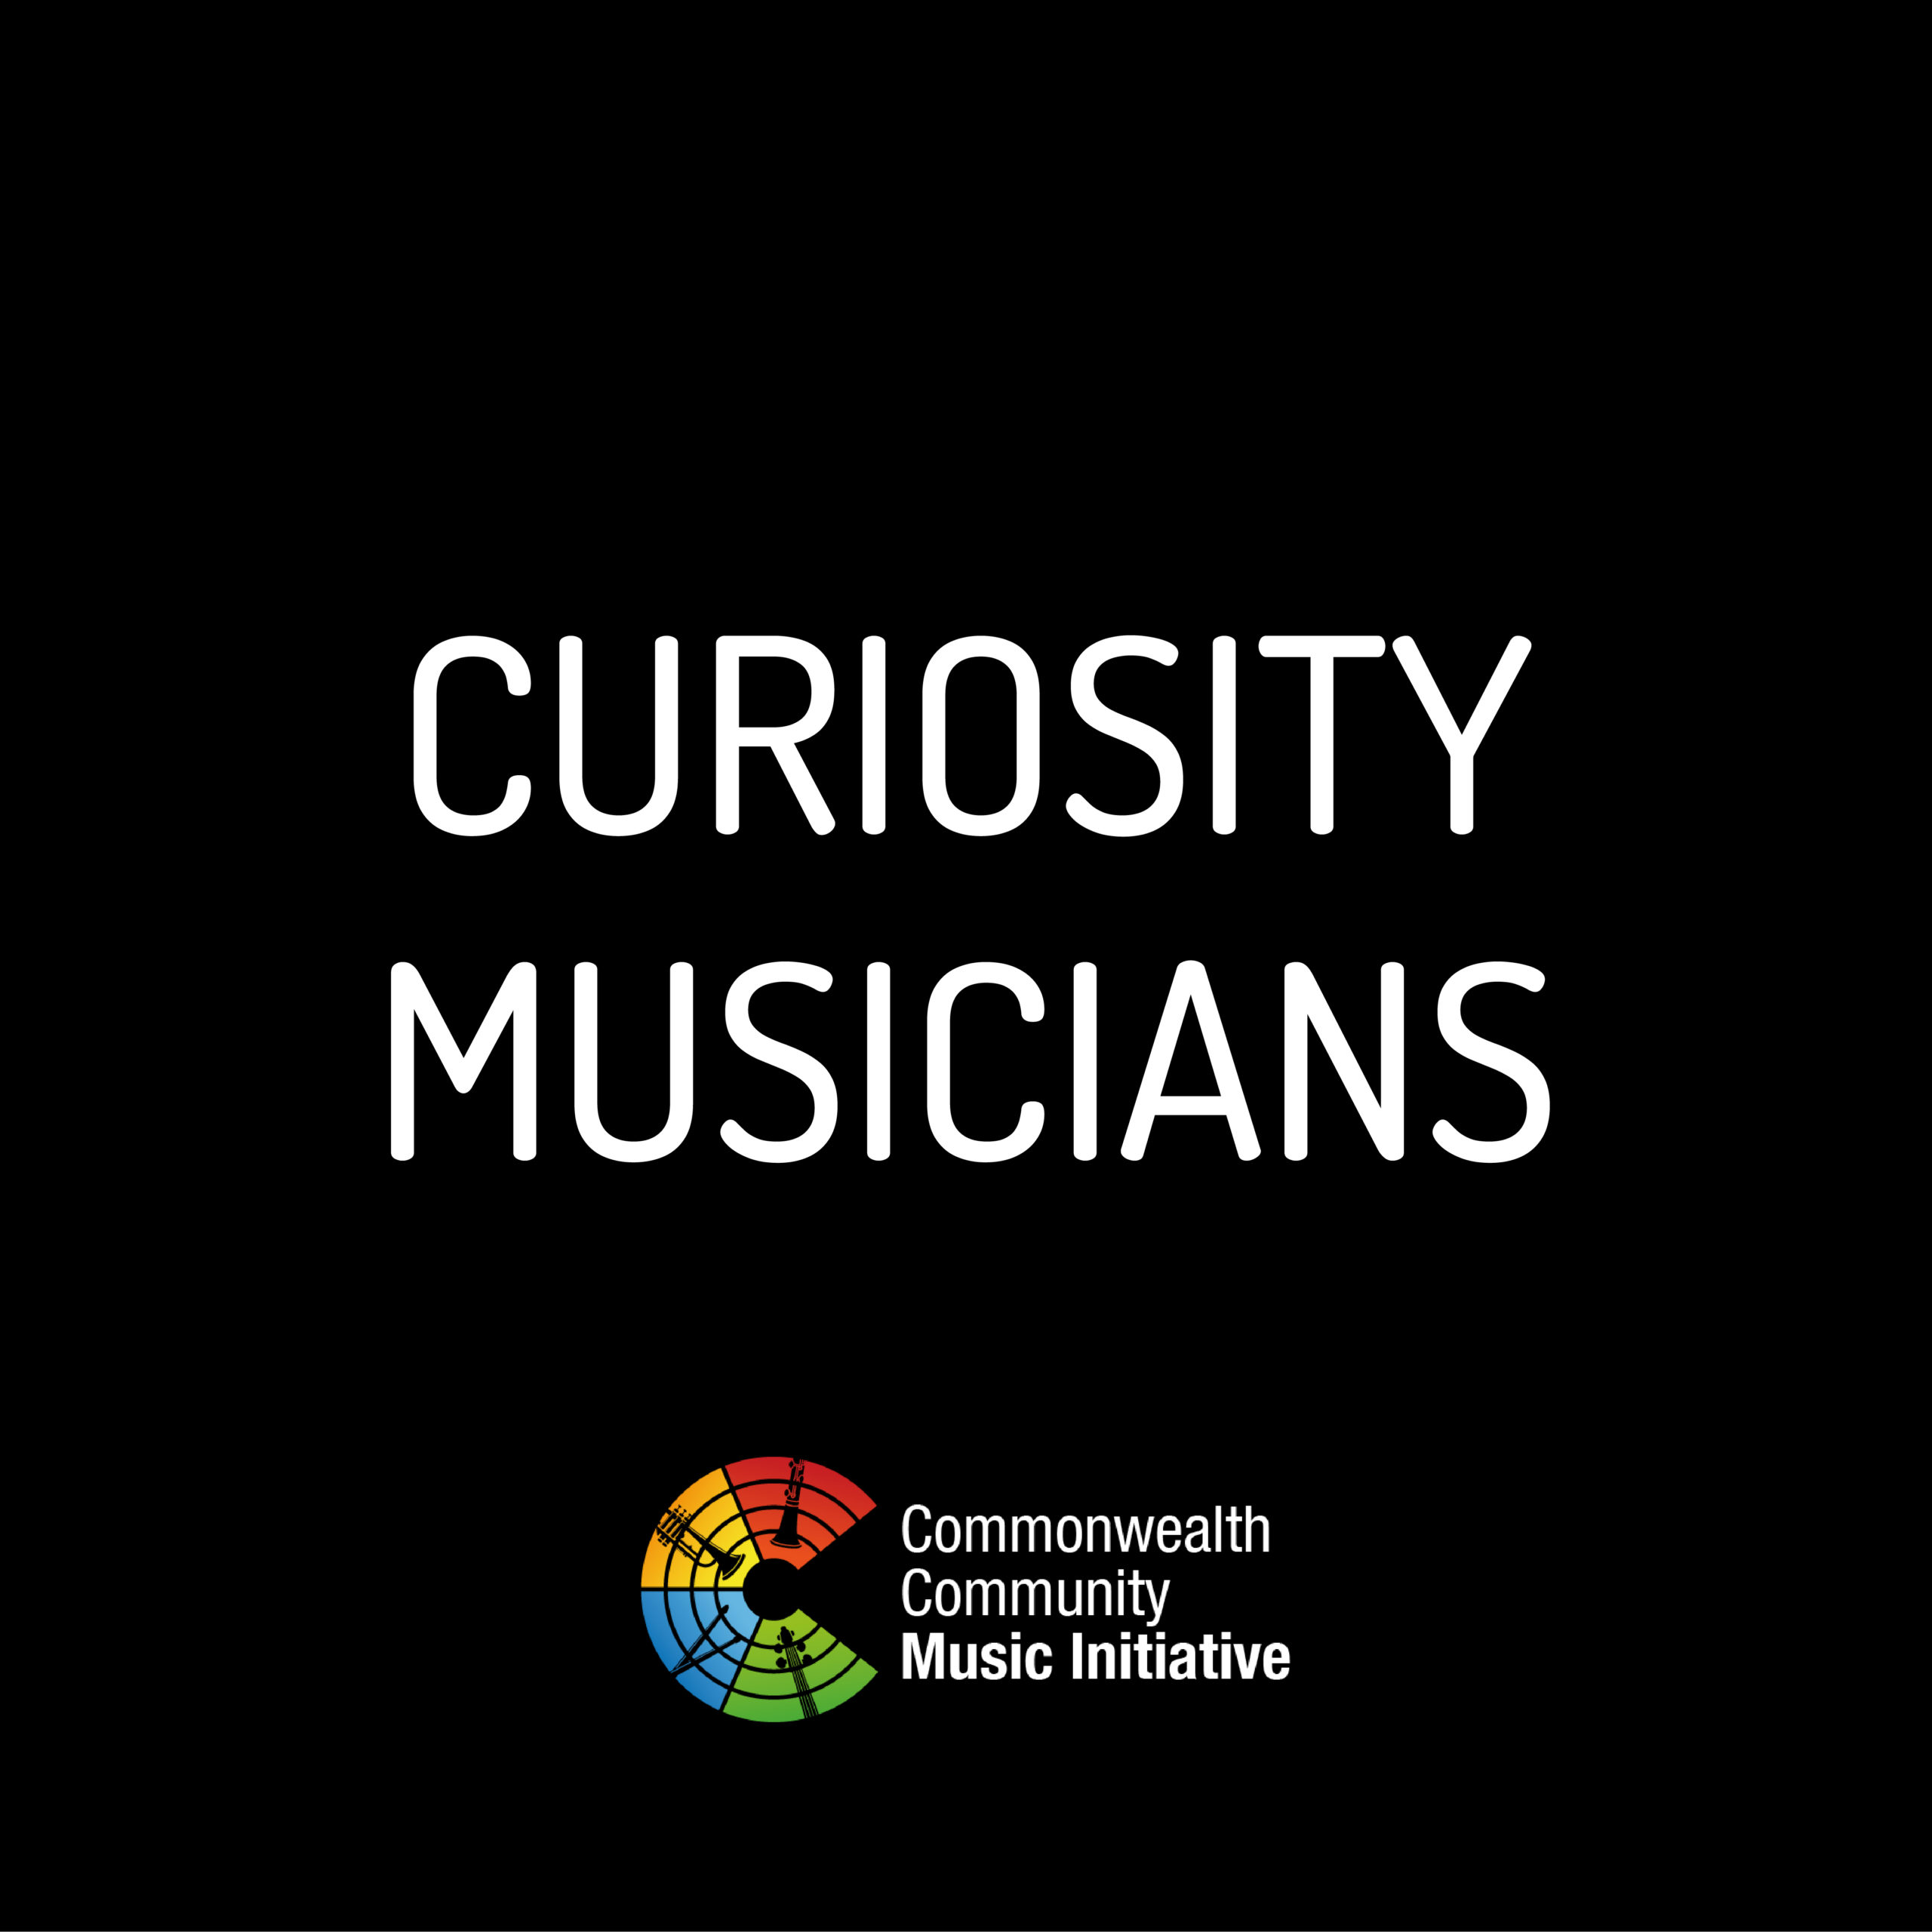 Commonwealth Community Music Initiative | Curiosity – Live Exhibition Weekend for Musicians